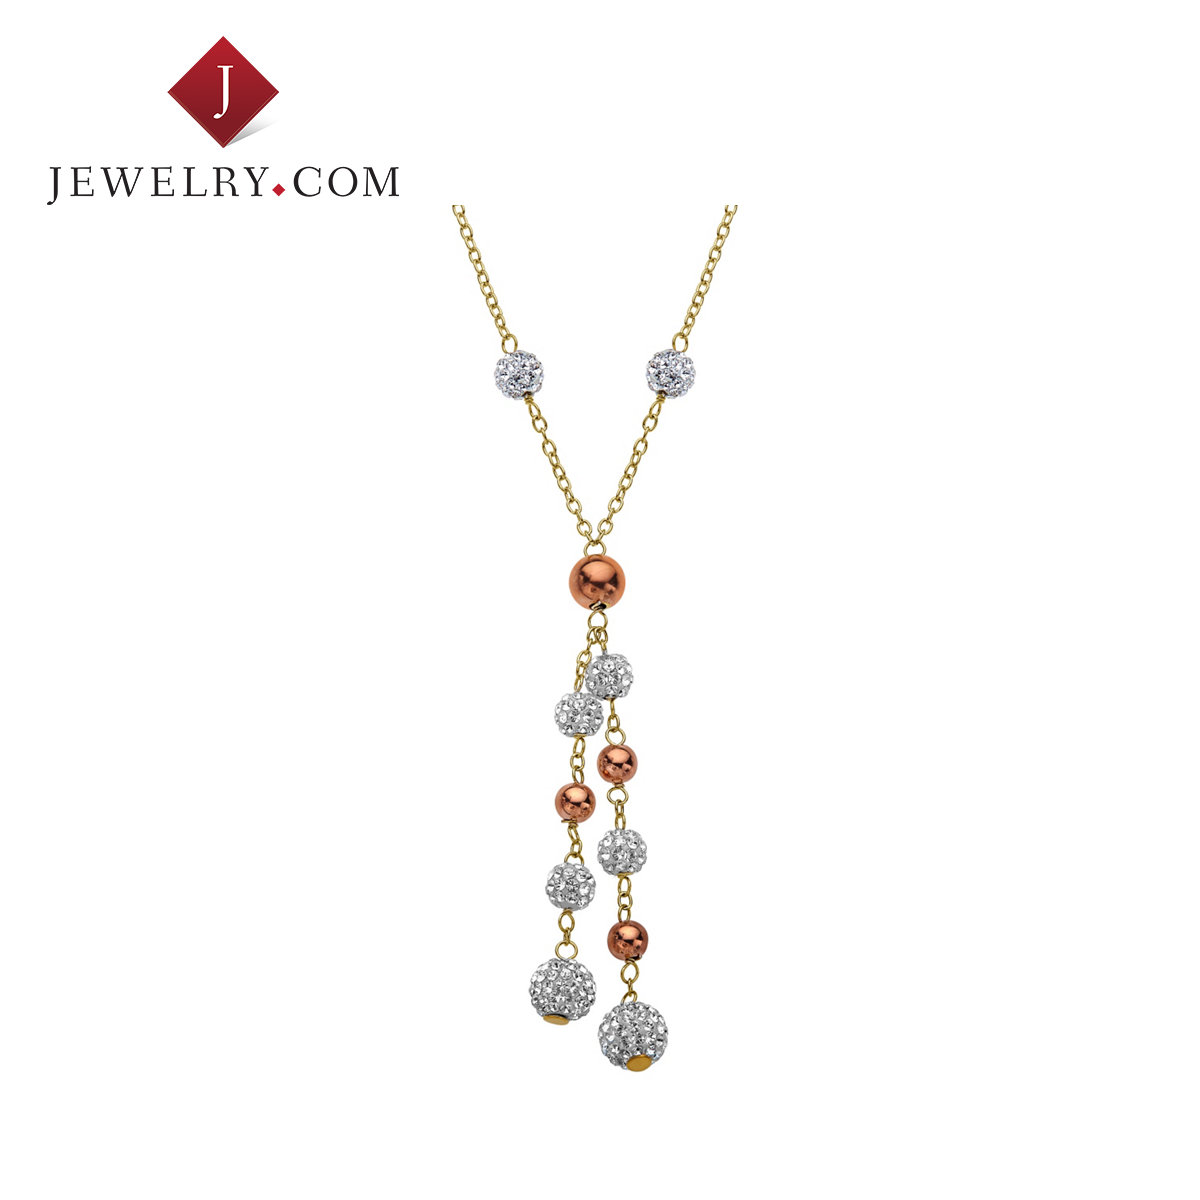 Crystaluxe yellow and pink k gold plated sterling silver inlaid swarovski crystal necklace female